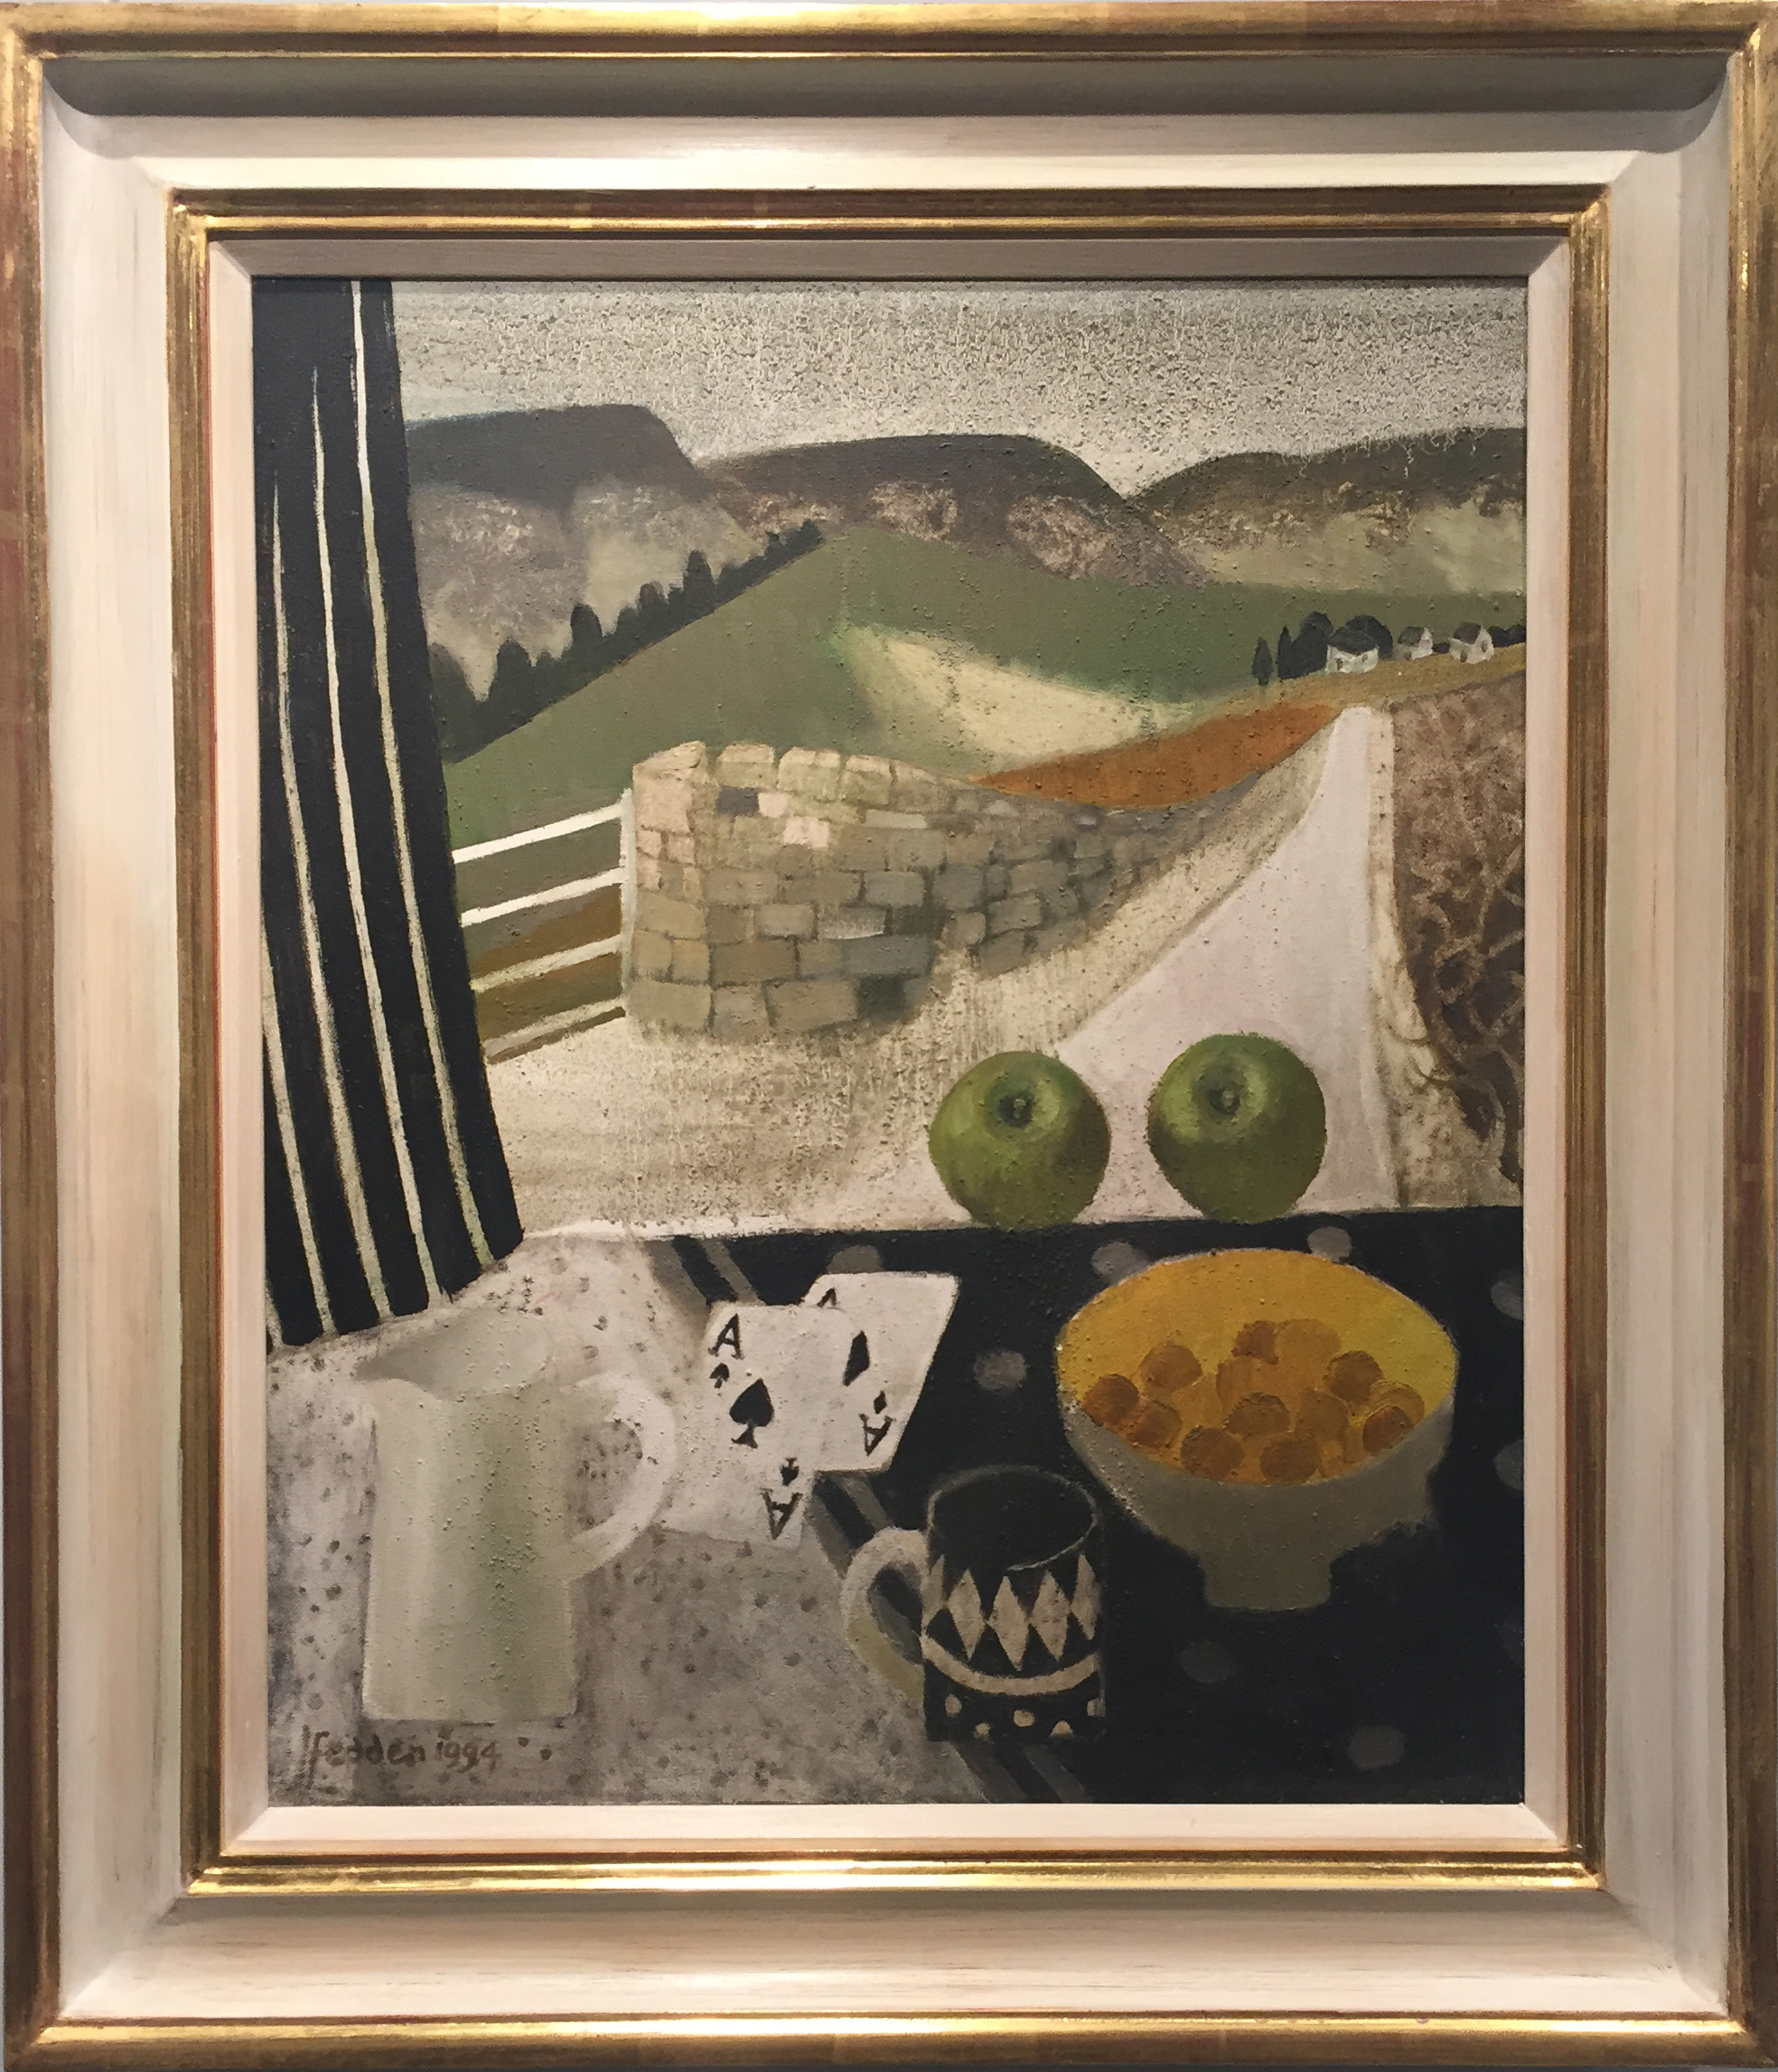 MARY FEDDEN. FARNDALE WINDOW.